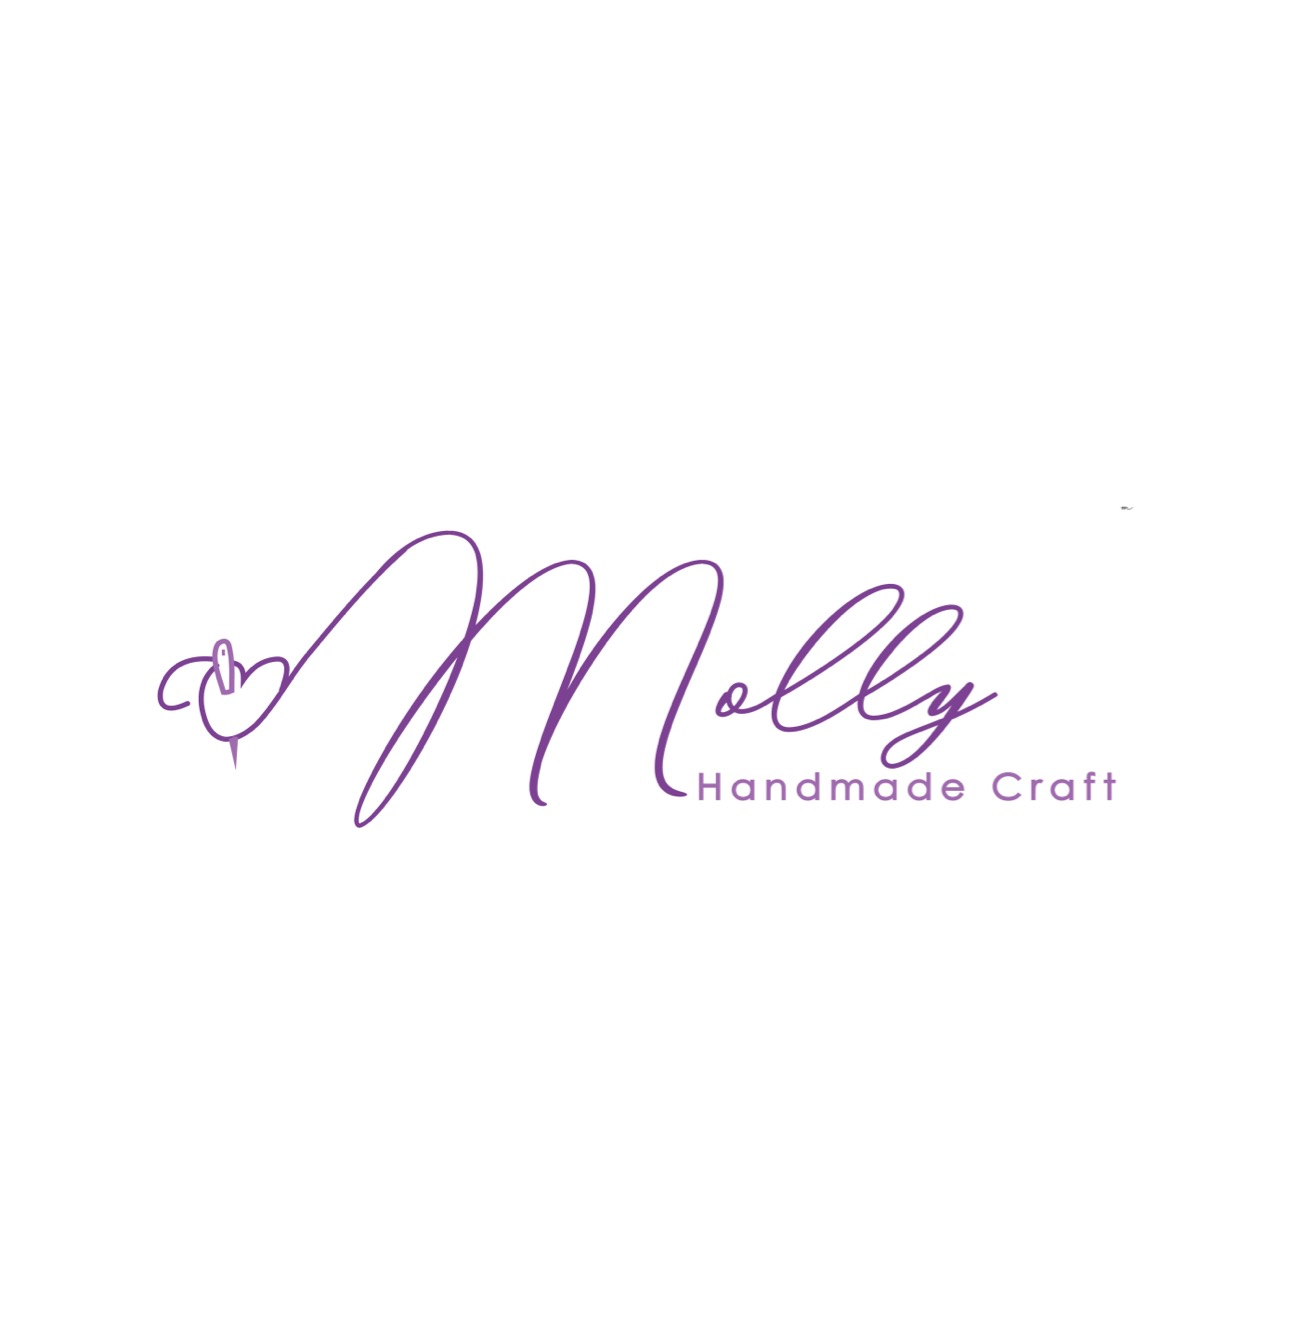 Molly Handmade Craft - logo